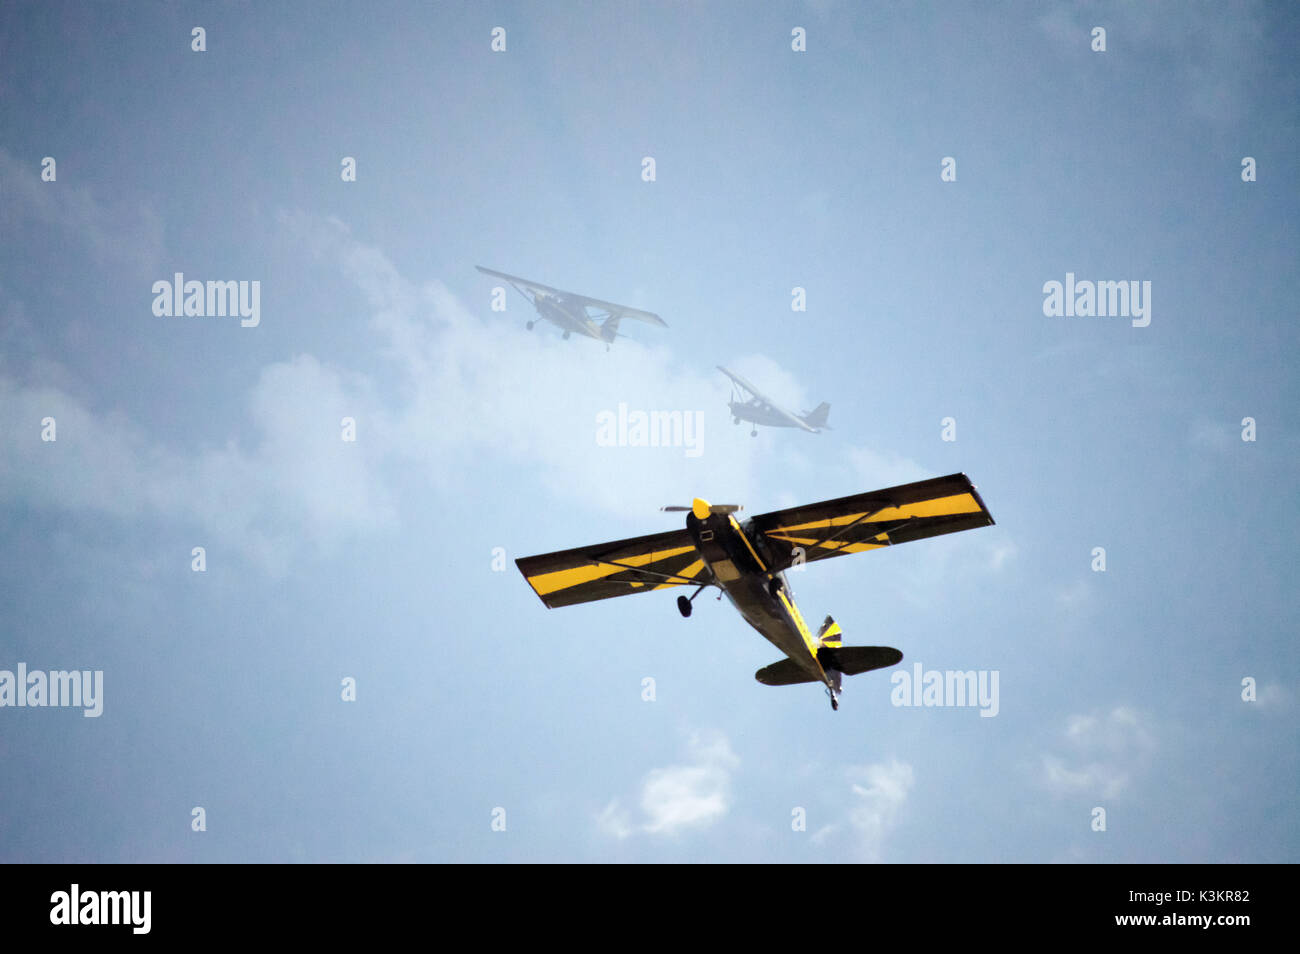 A blue and yellow propeller bi-plane special effects photo showing how it turned in the sky. - Stock Image